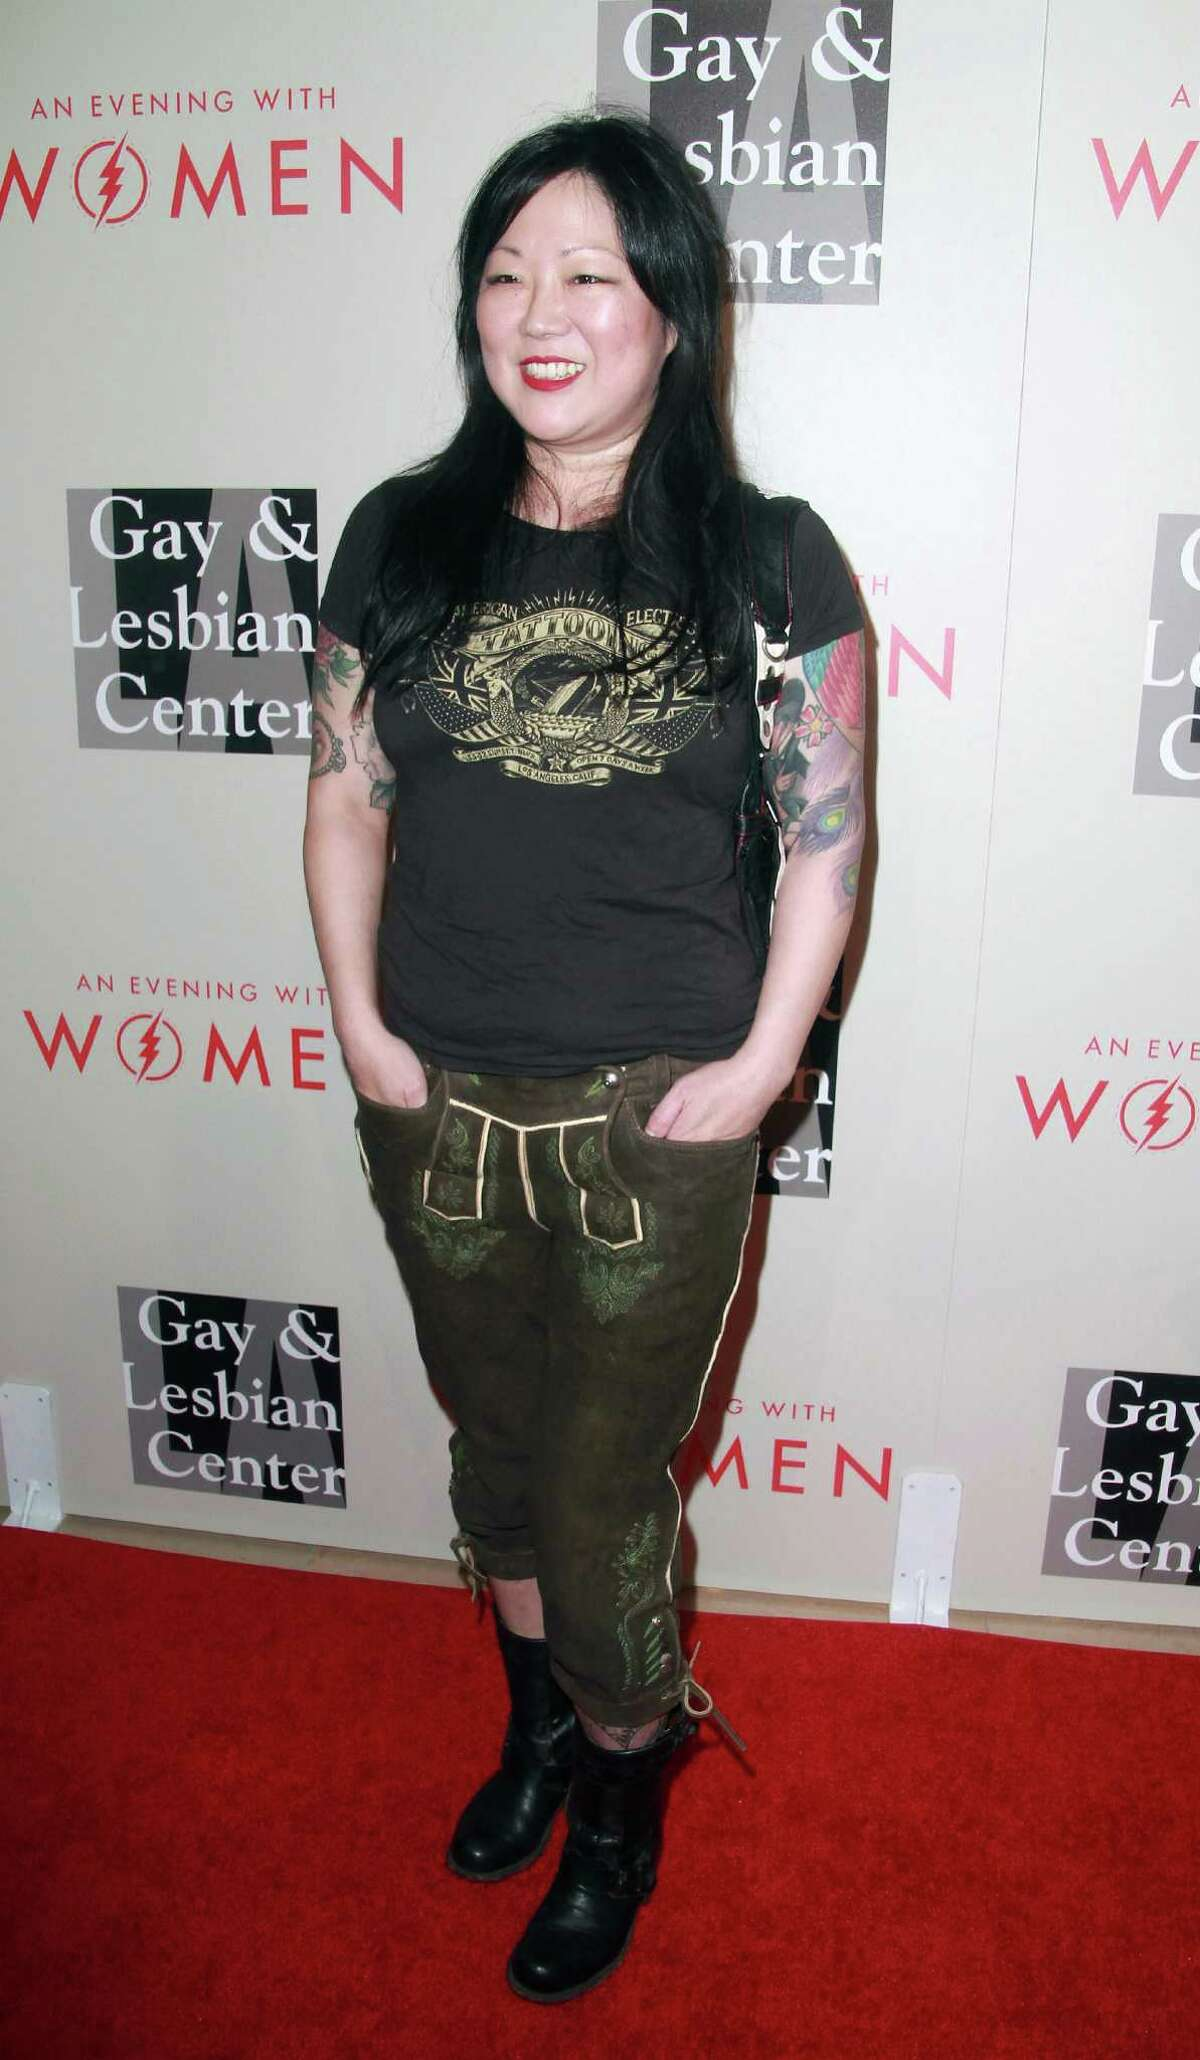 """Margaret Cho arrives at The L.A. Gay and Lesbian Center's Annual """"An Evening With Women"""" at The Beverly Hilton on Saturday, May 10, 2014, in Beverly Hills, Calif. (Photo by Theresa Bouche/Invision/AP Images) ORG XMIT: CATB!)$"""